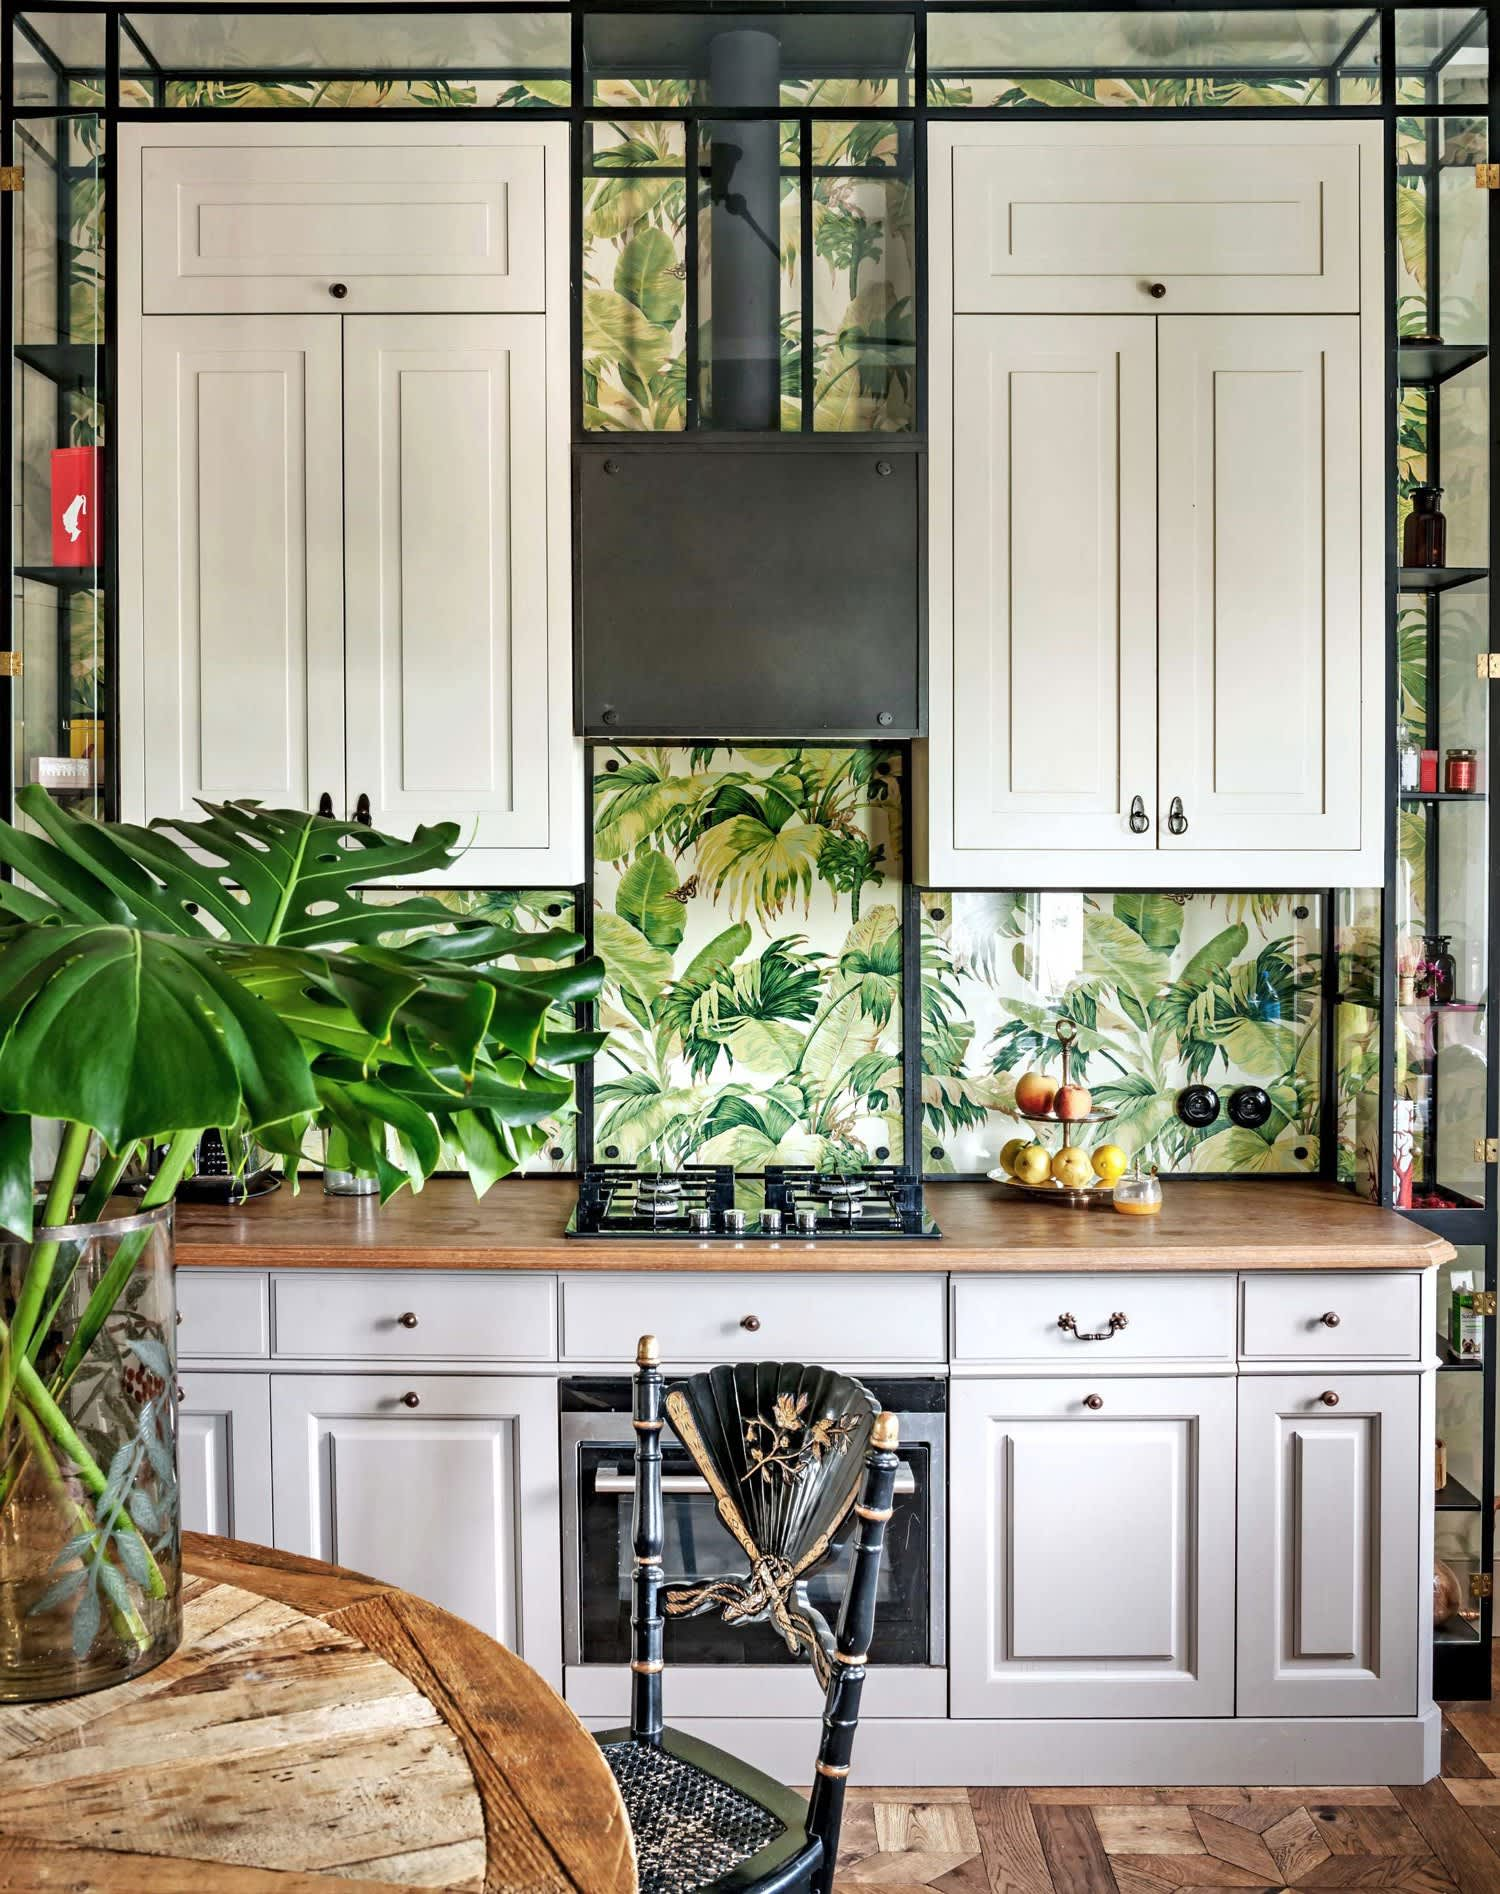 Kitchen Cabinets That Are Incredibly Beautiful | Apartment ...